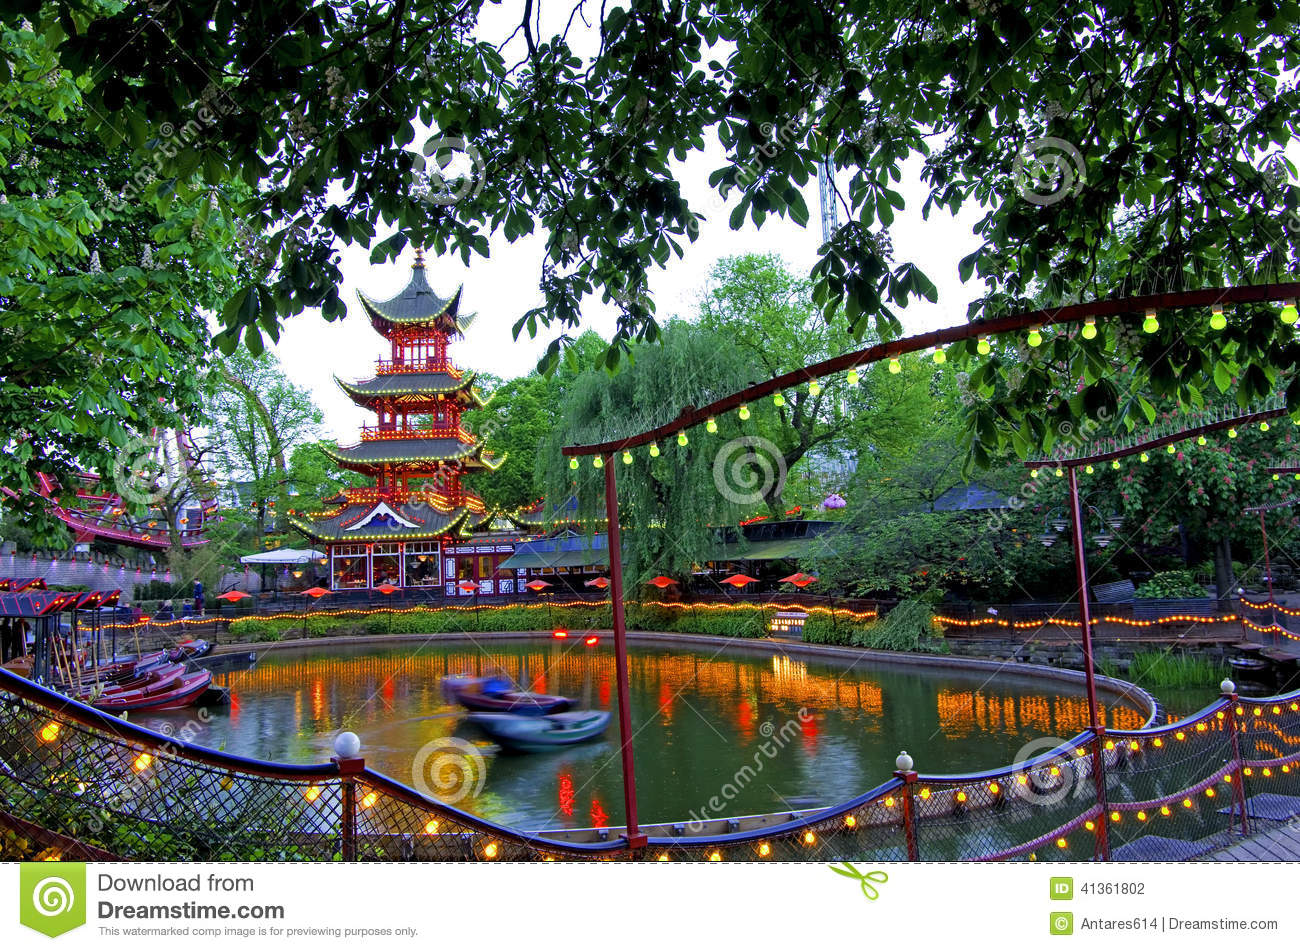 Jardins de tivoli photo stock image 41361802 for Camping le jardin de tivoli